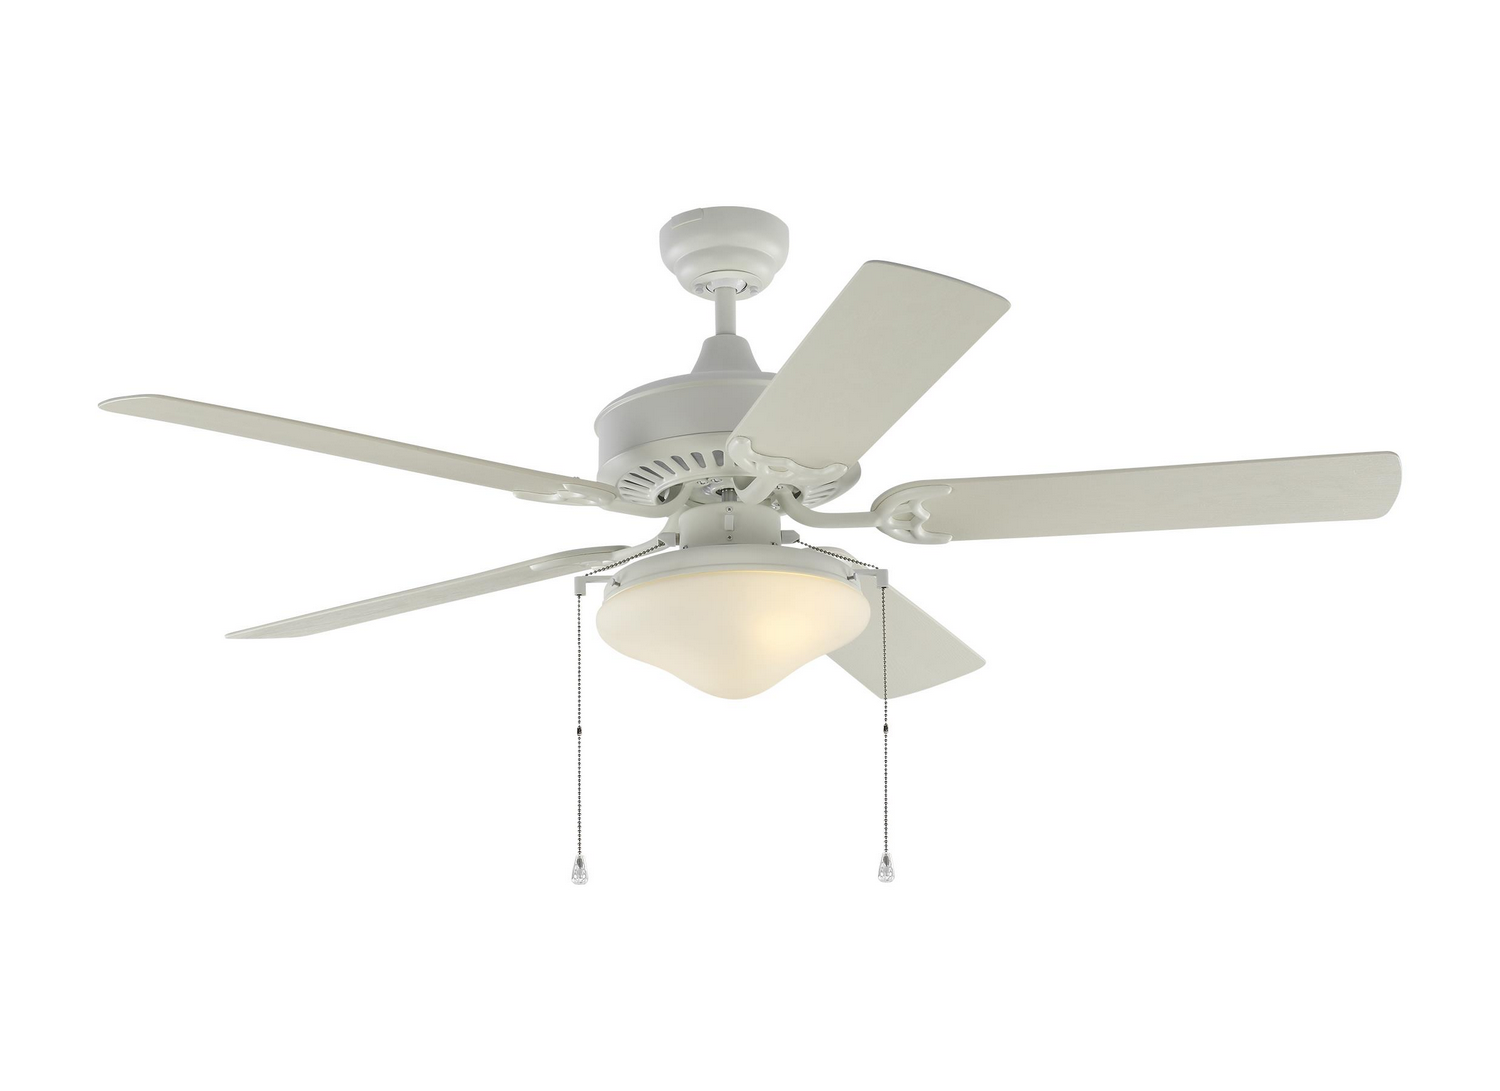 52 inchCeiling Fan from the Haven 52 Outdoor LED collection by Monte Carlo 5HVO52RZWD